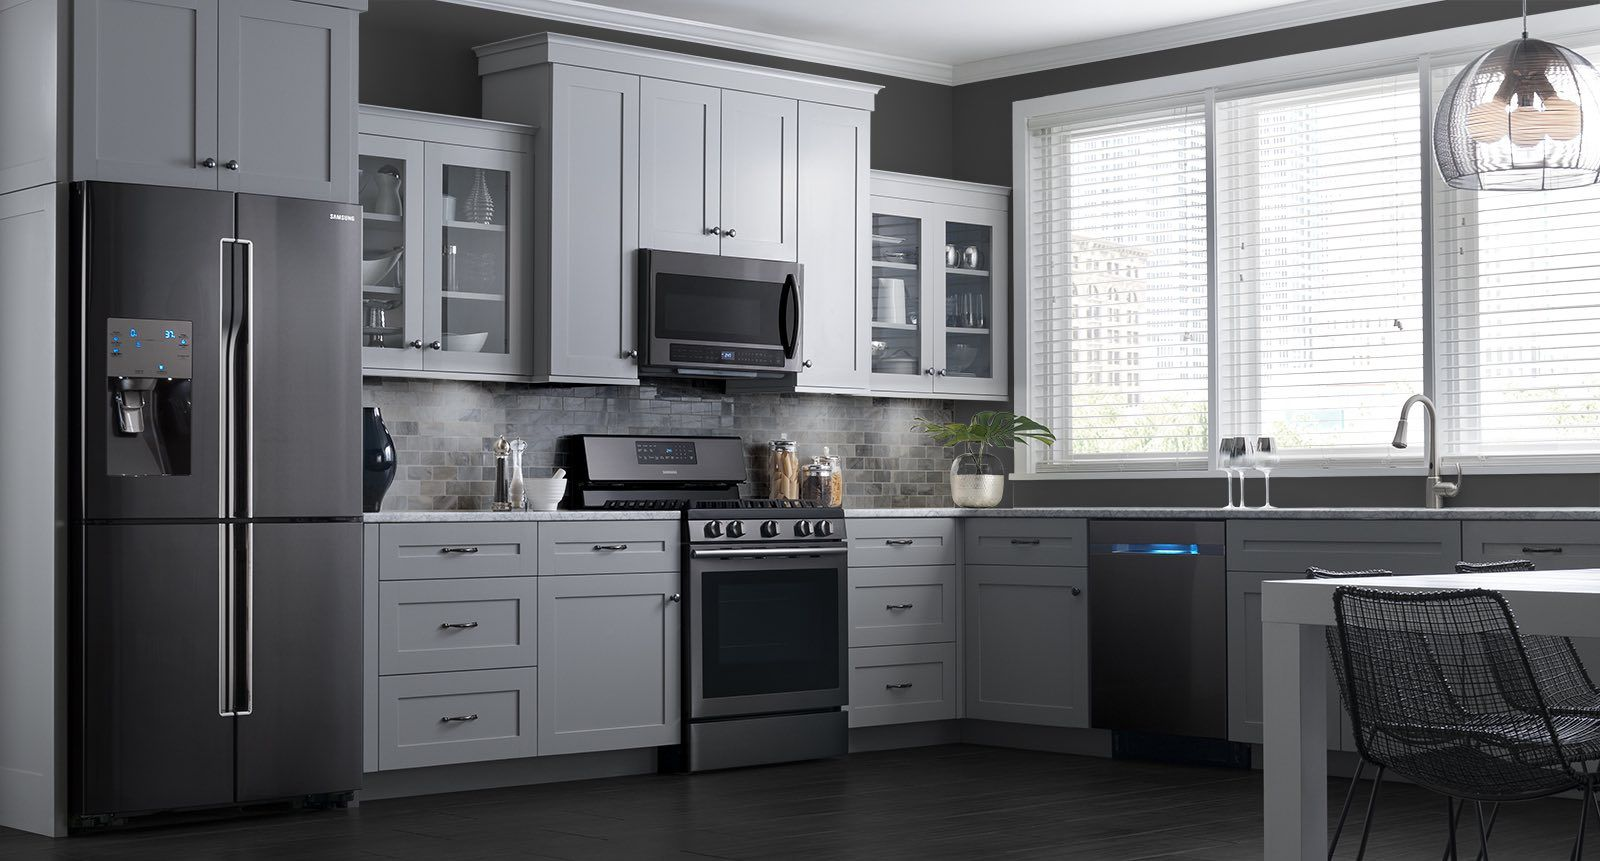 These Samsung black stainless steel appliances look ...